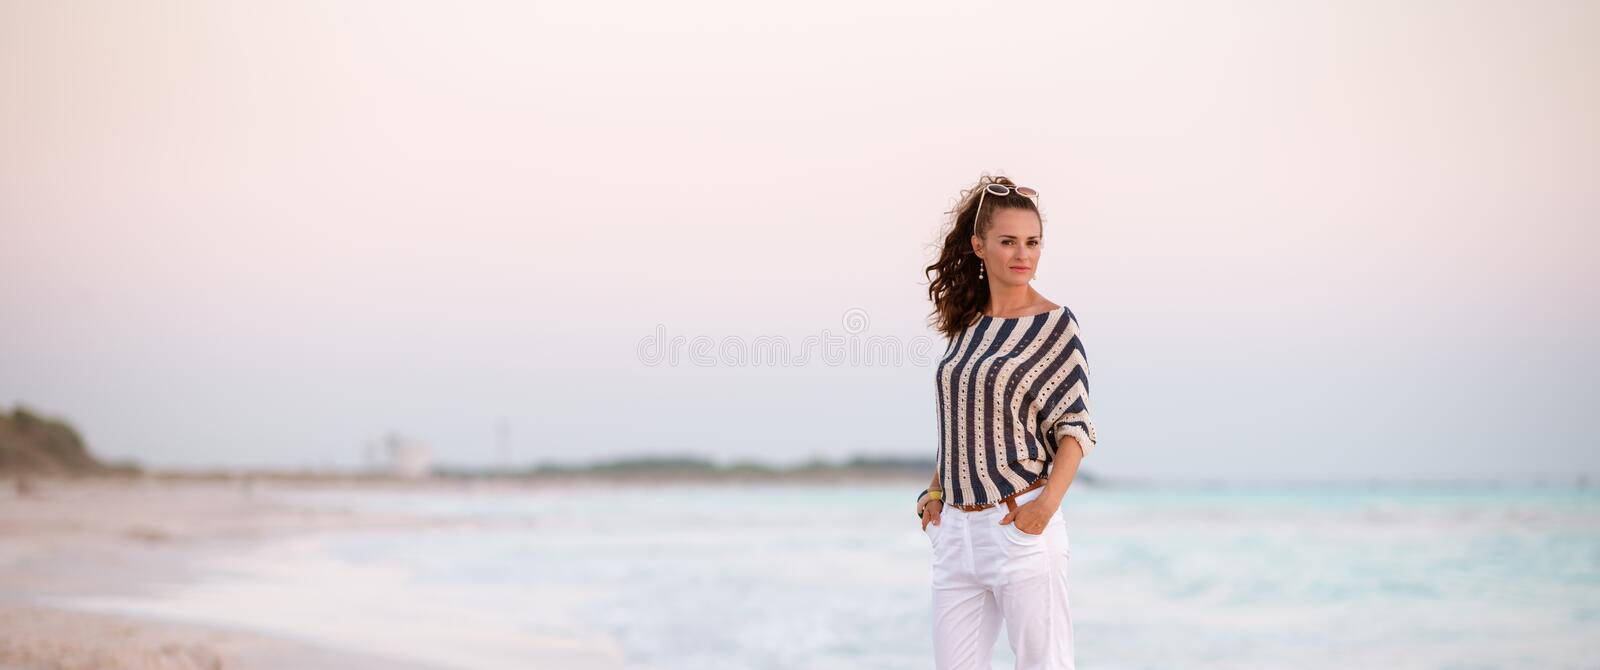 Stylish woman on beach in evening royalty free stock photography